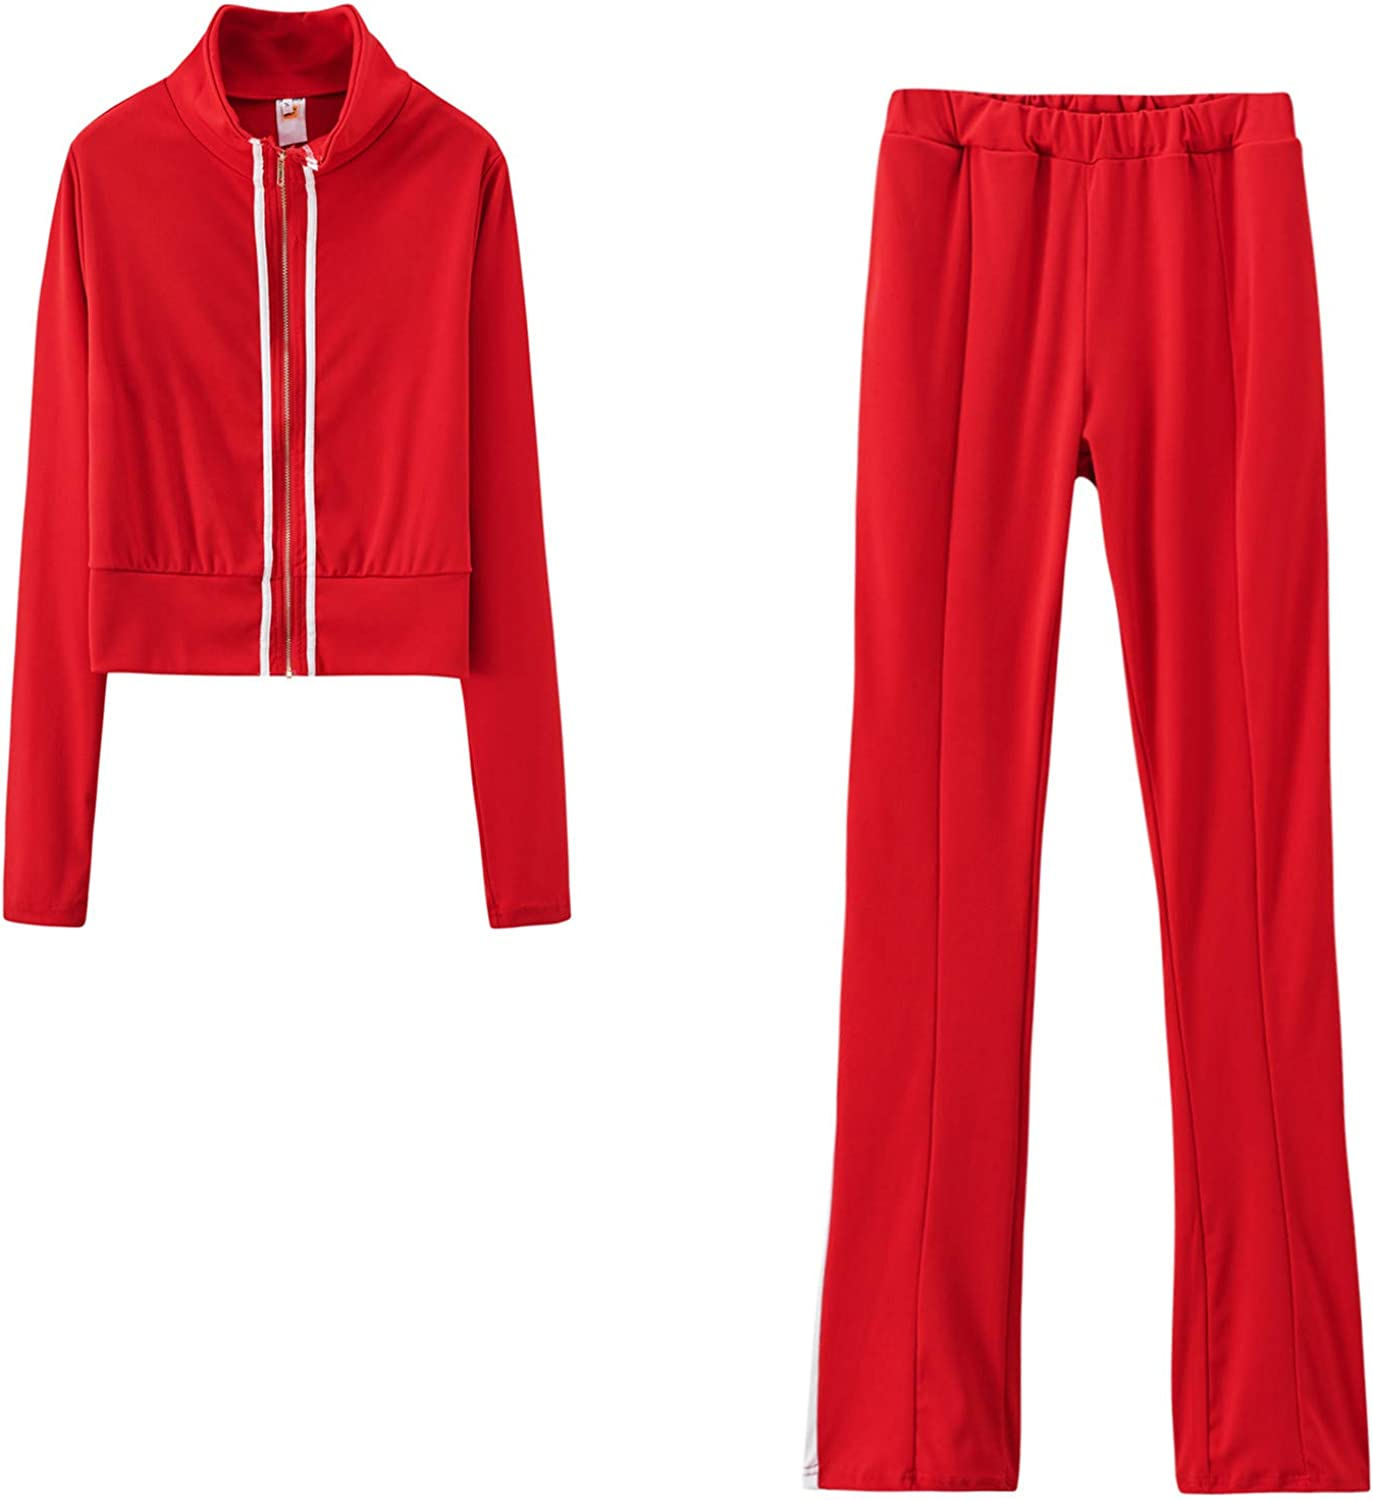 Women Fashion Bombing free Max 78% OFF shipping Zipper Solid Color Sweat Pant and Top Shirt Tracks